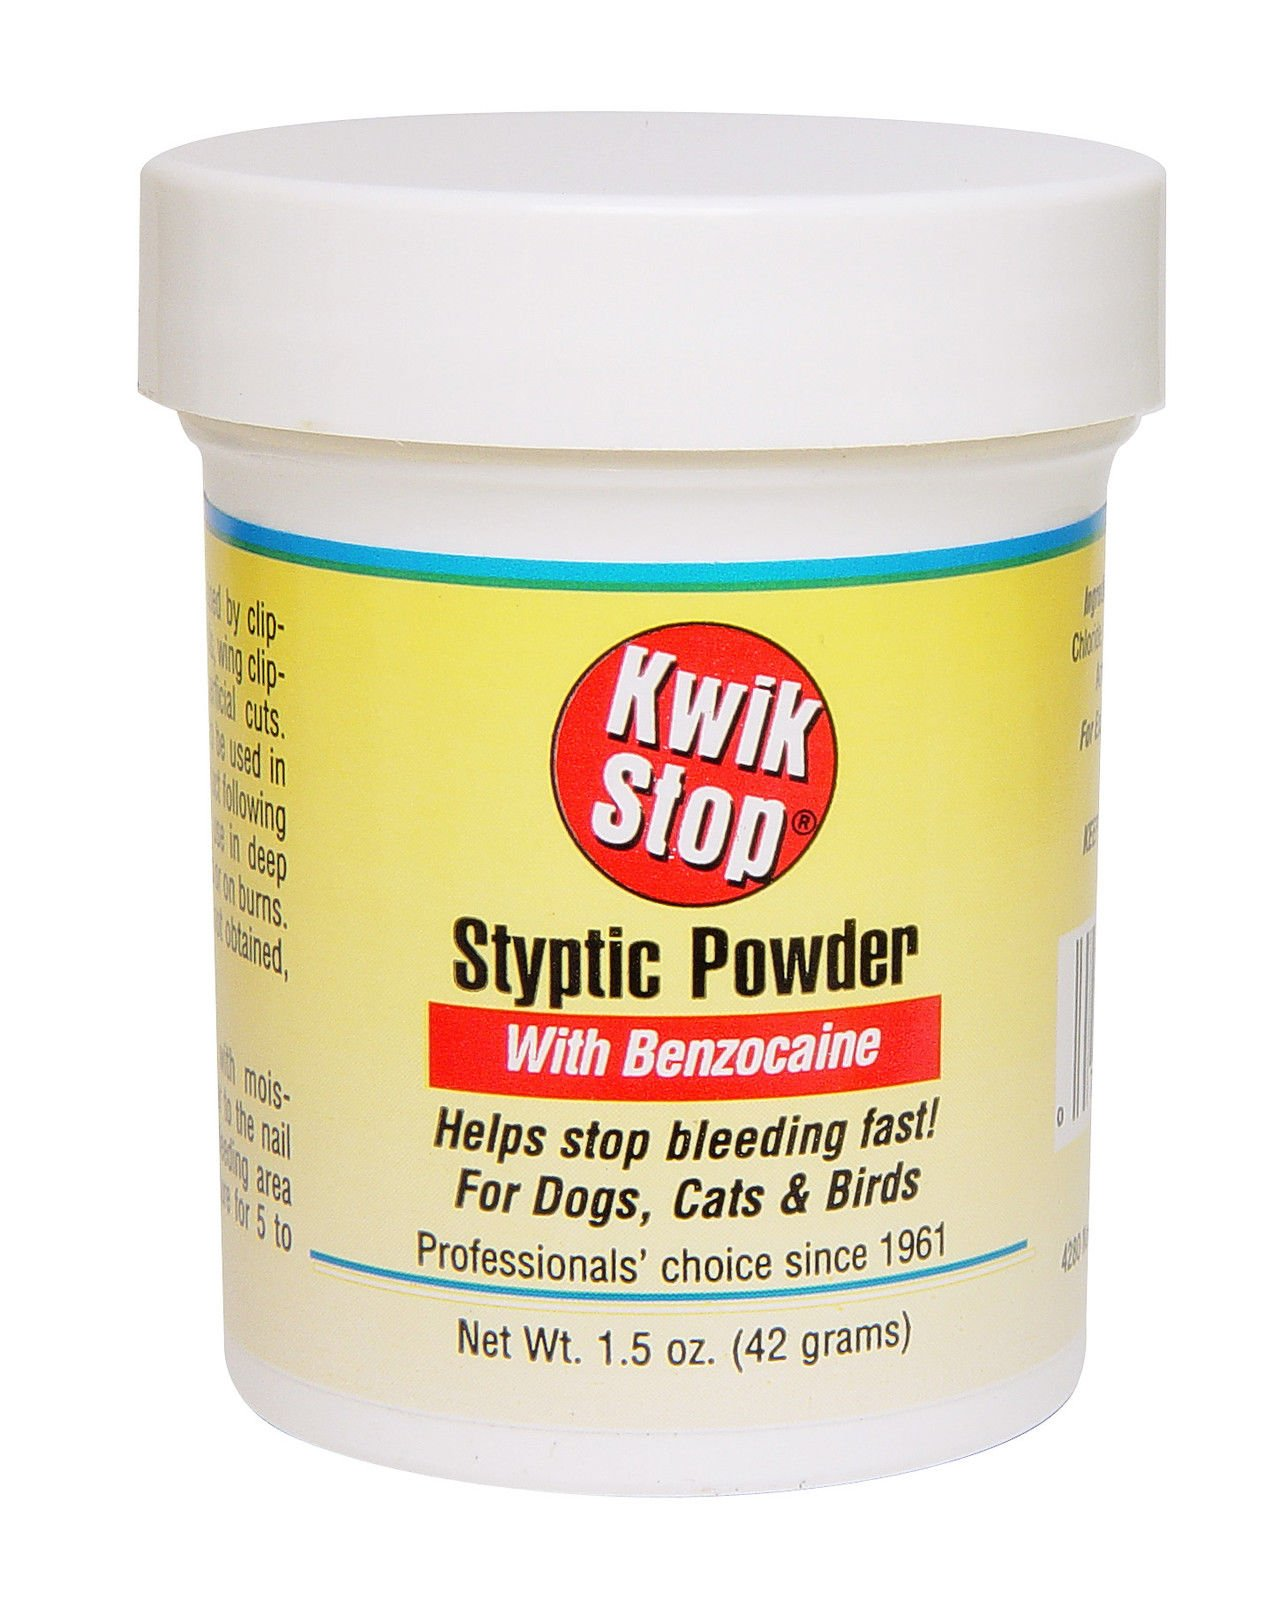 Kwik Stop Styptic Powder Helps Stop Nail Bleeding Fast! For Dogs, Cats & Birds 1.5 oz